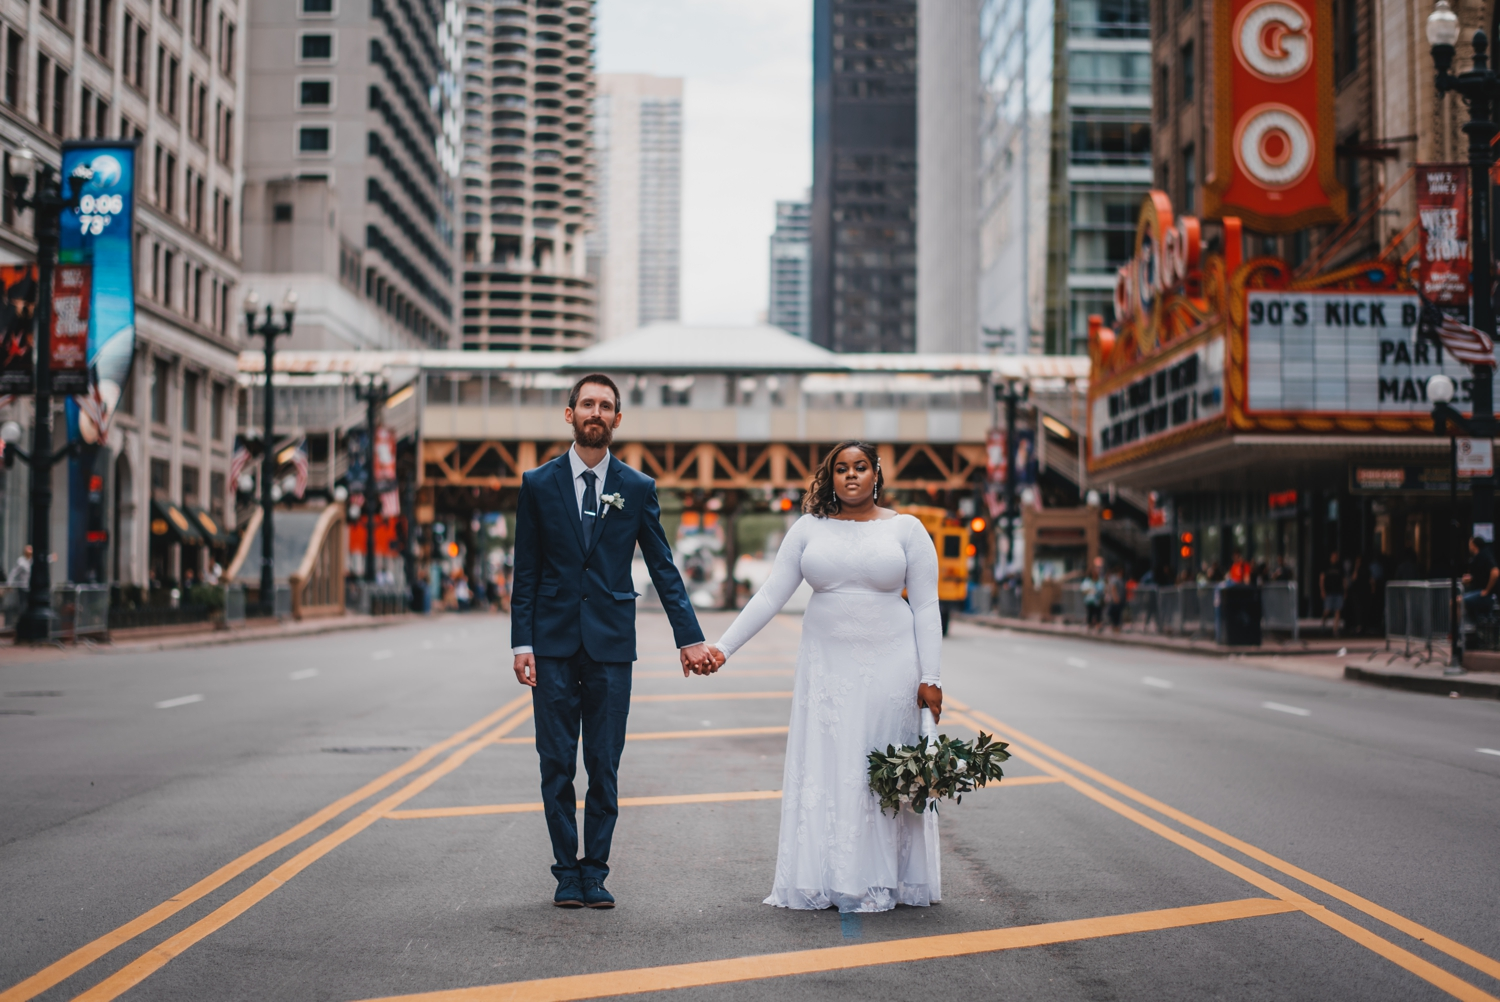 Chicago Elopement photographer - The Adamkovi, bride and groom in front of the Chicago theater